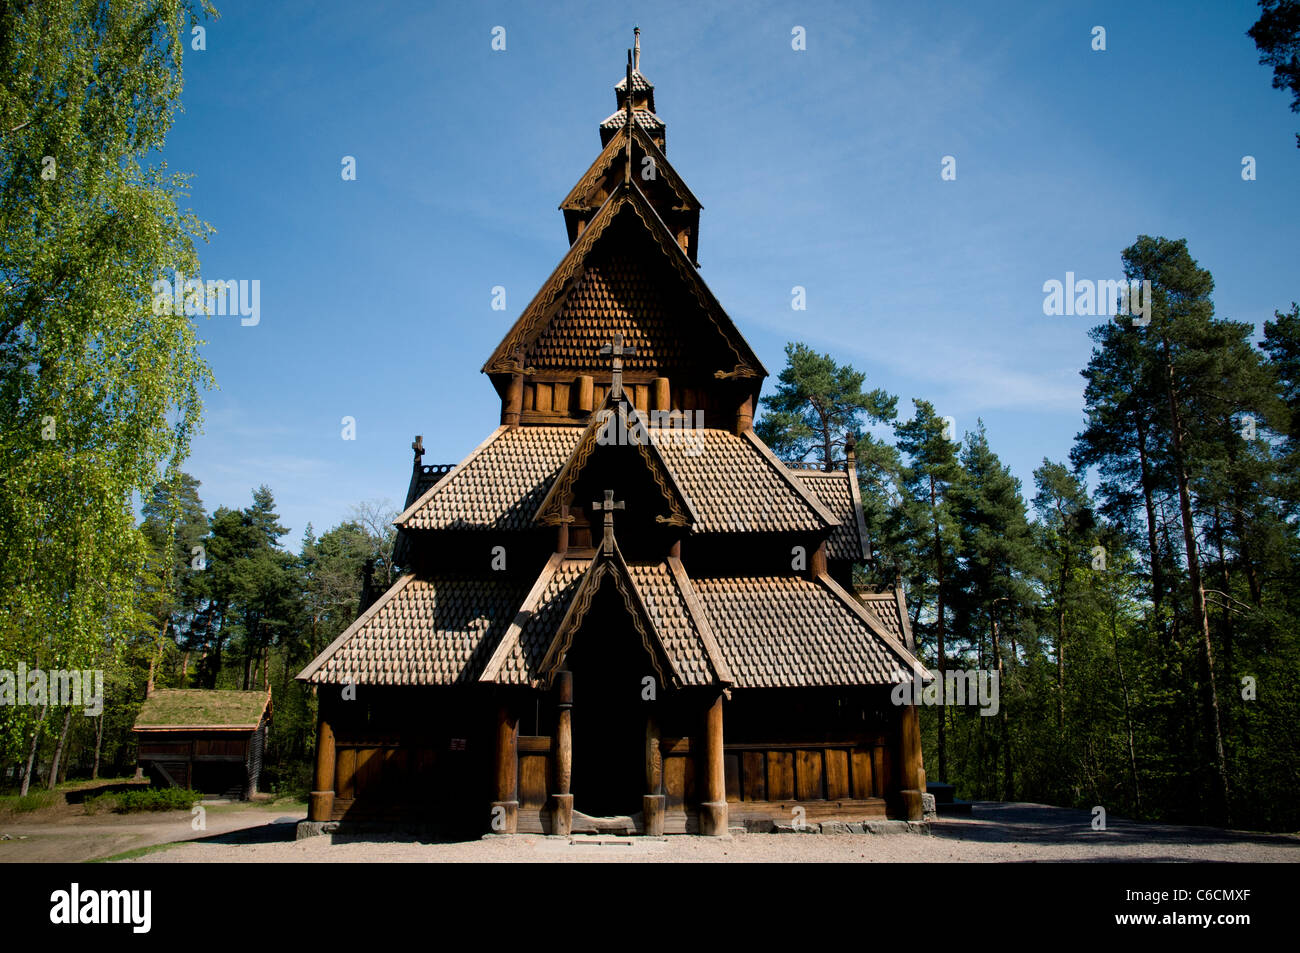 The Gol stave church (Gol stavkirke) in the Norwegian Museum of Cultural History of Oslo - Stock Image